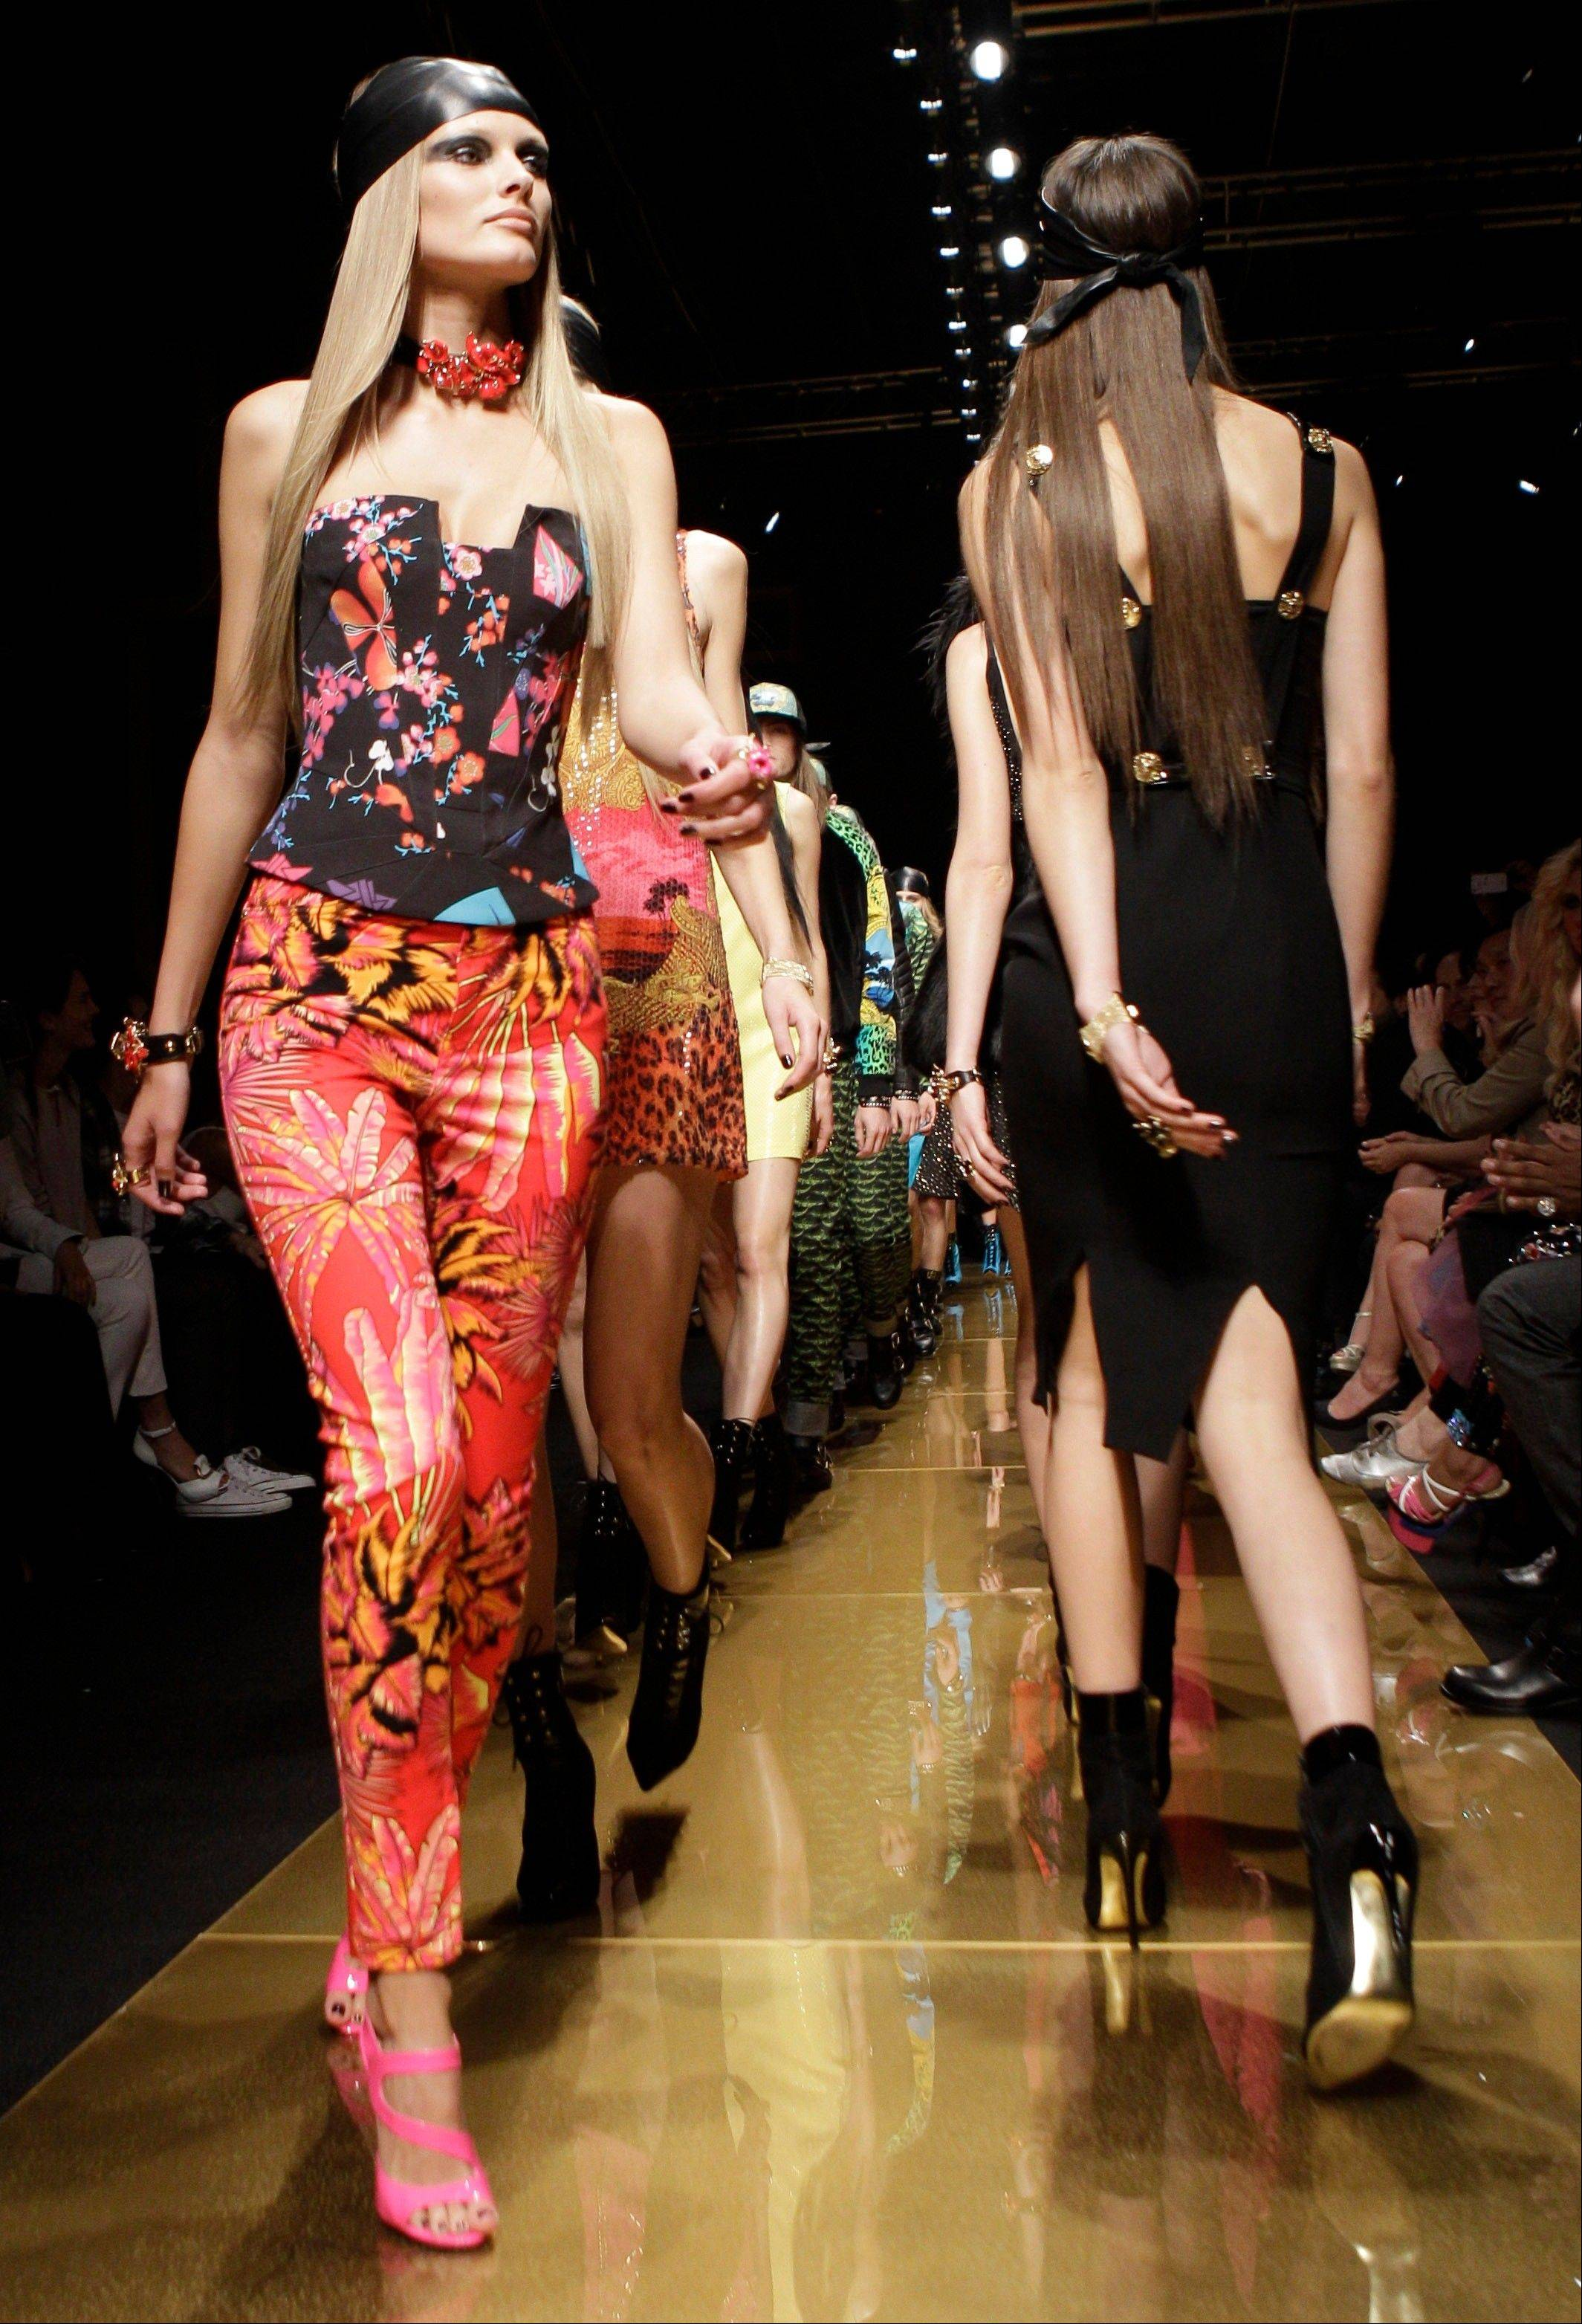 Models parade on the runway during the Versace for H&M fashion show in New York.